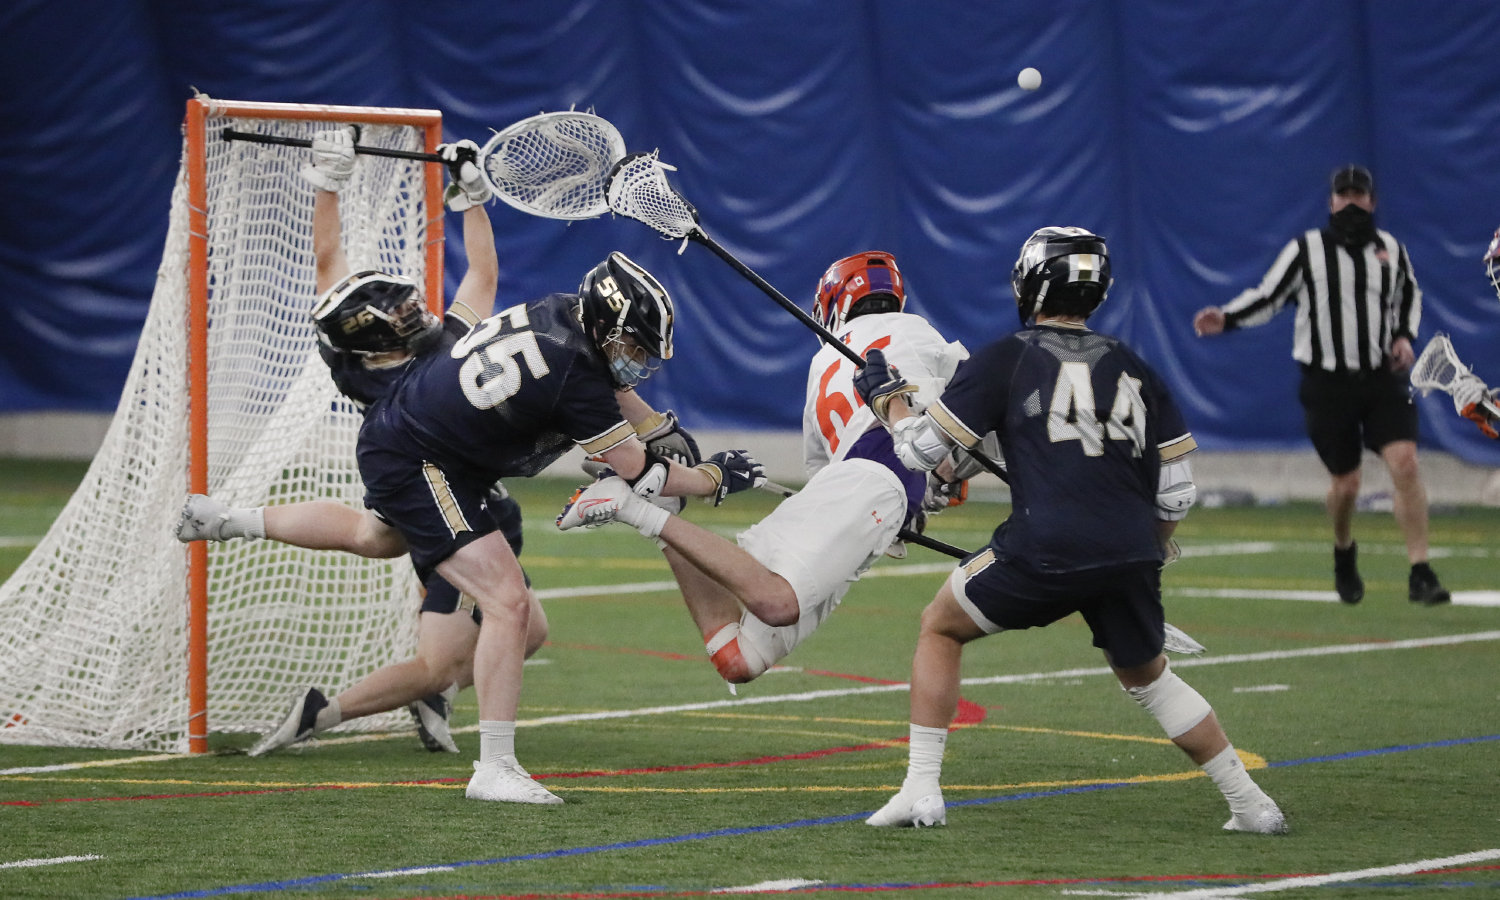 Hobarts Jason Knox takes a shot on goal against Mount St Marys during Saturdays season opener. Although this shot went off the post Knox went on to score 3 goals in the 13-9 win.